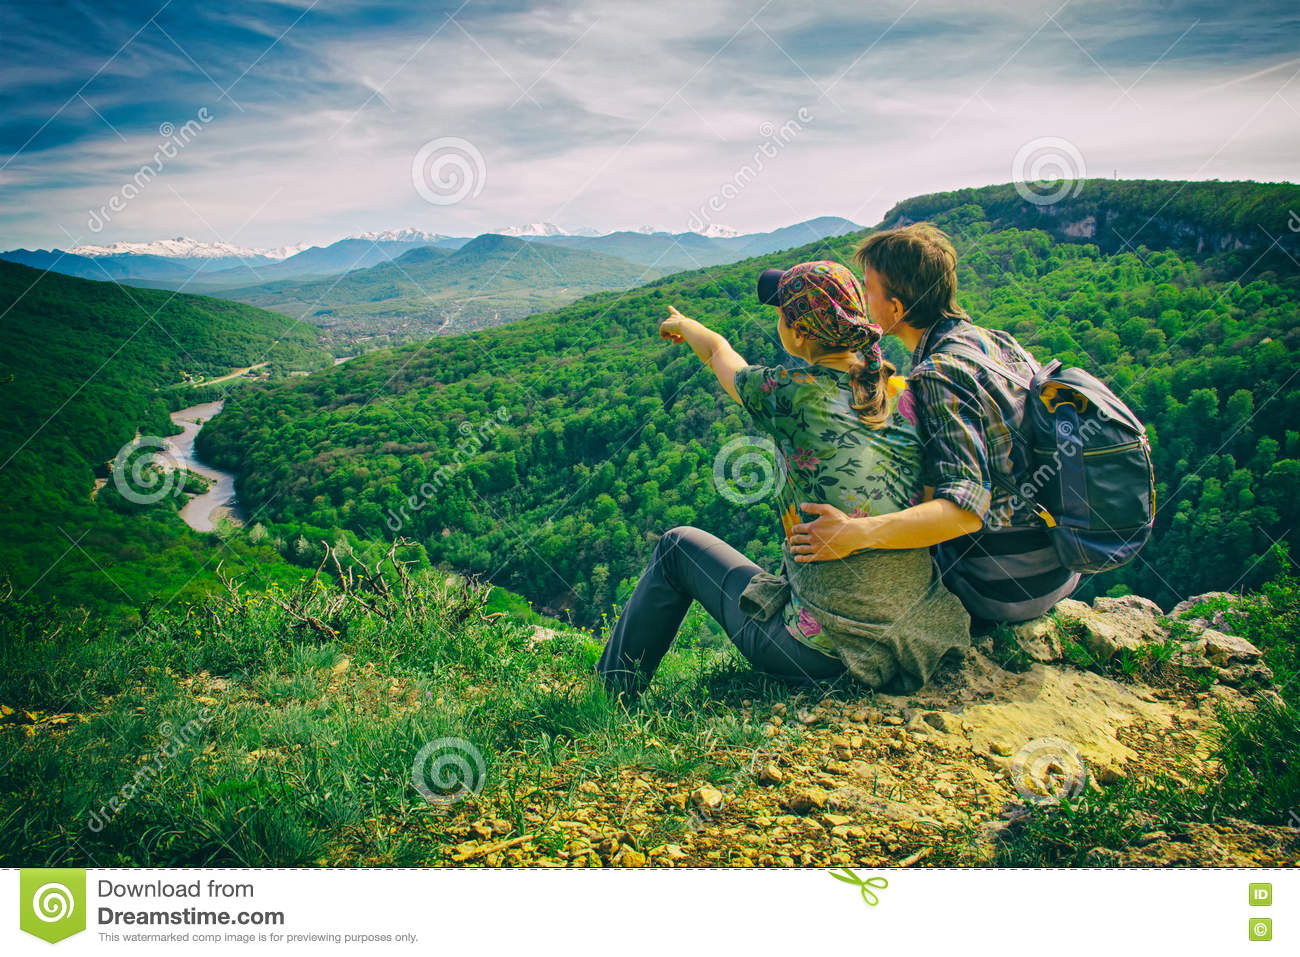 Couple sits on the edge and looks to the mountains, girl points, the effect of the retro camera